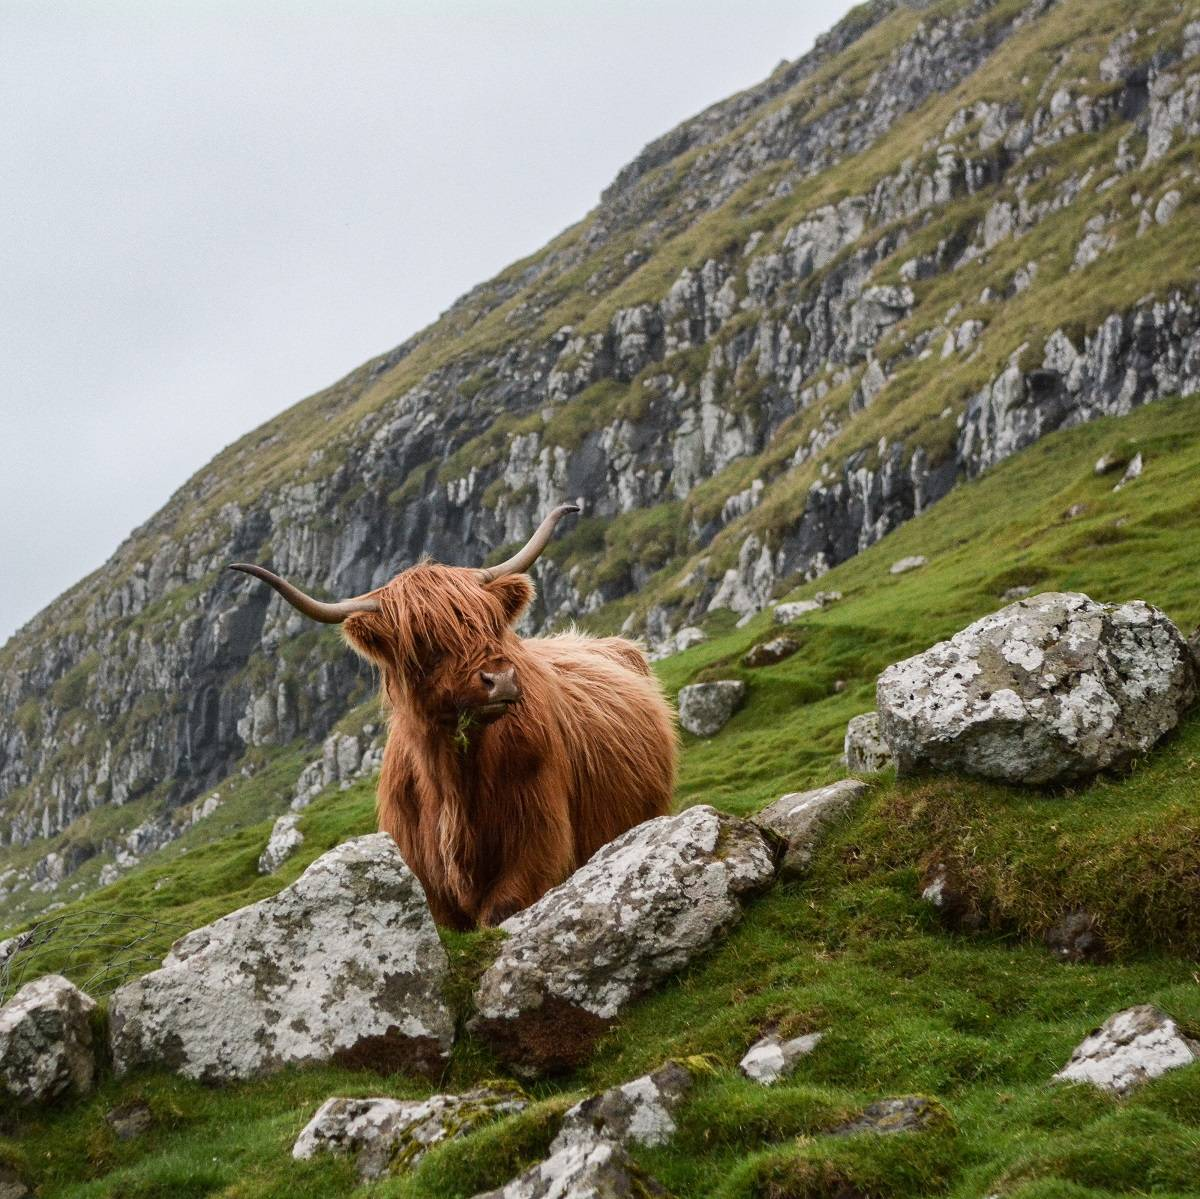 A Highland Cow standing on a rocky hillside in Scotland